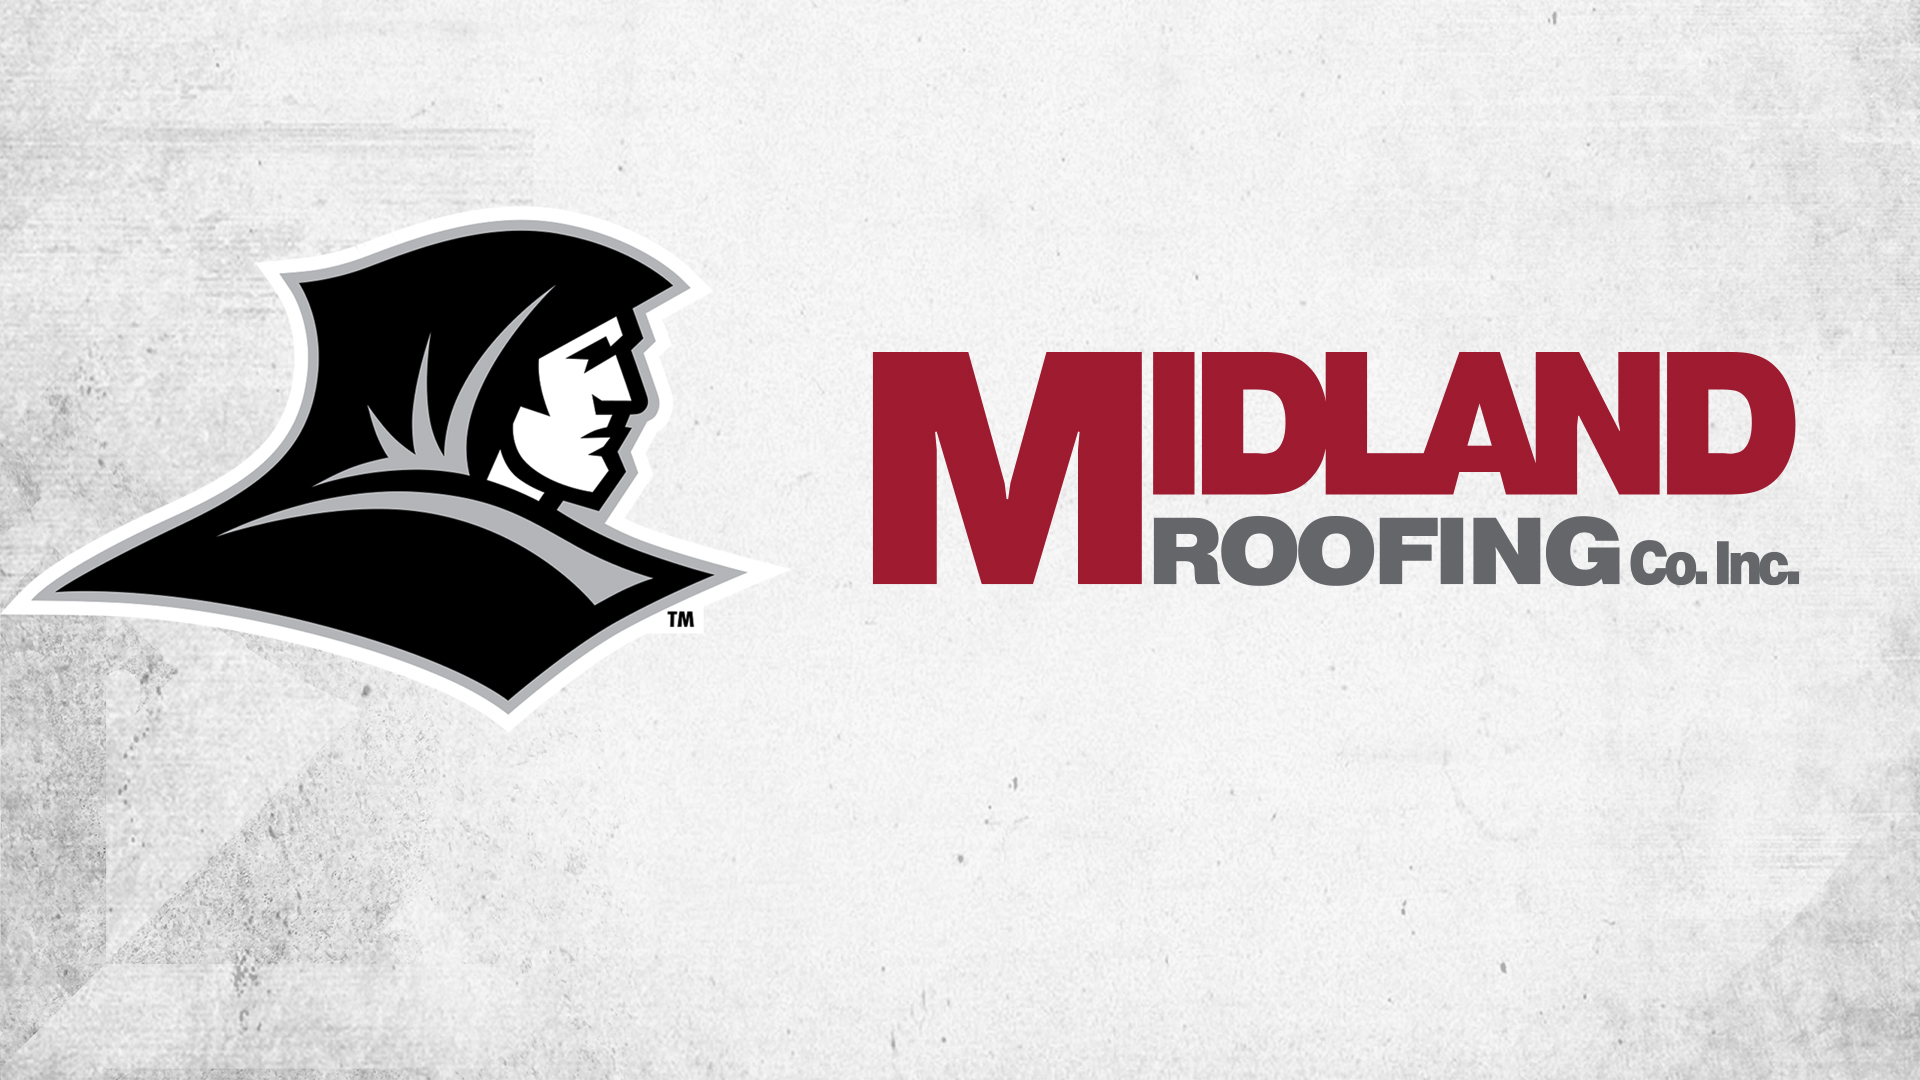 Midland Roofing Co., Providence Friars Announce New Relationship